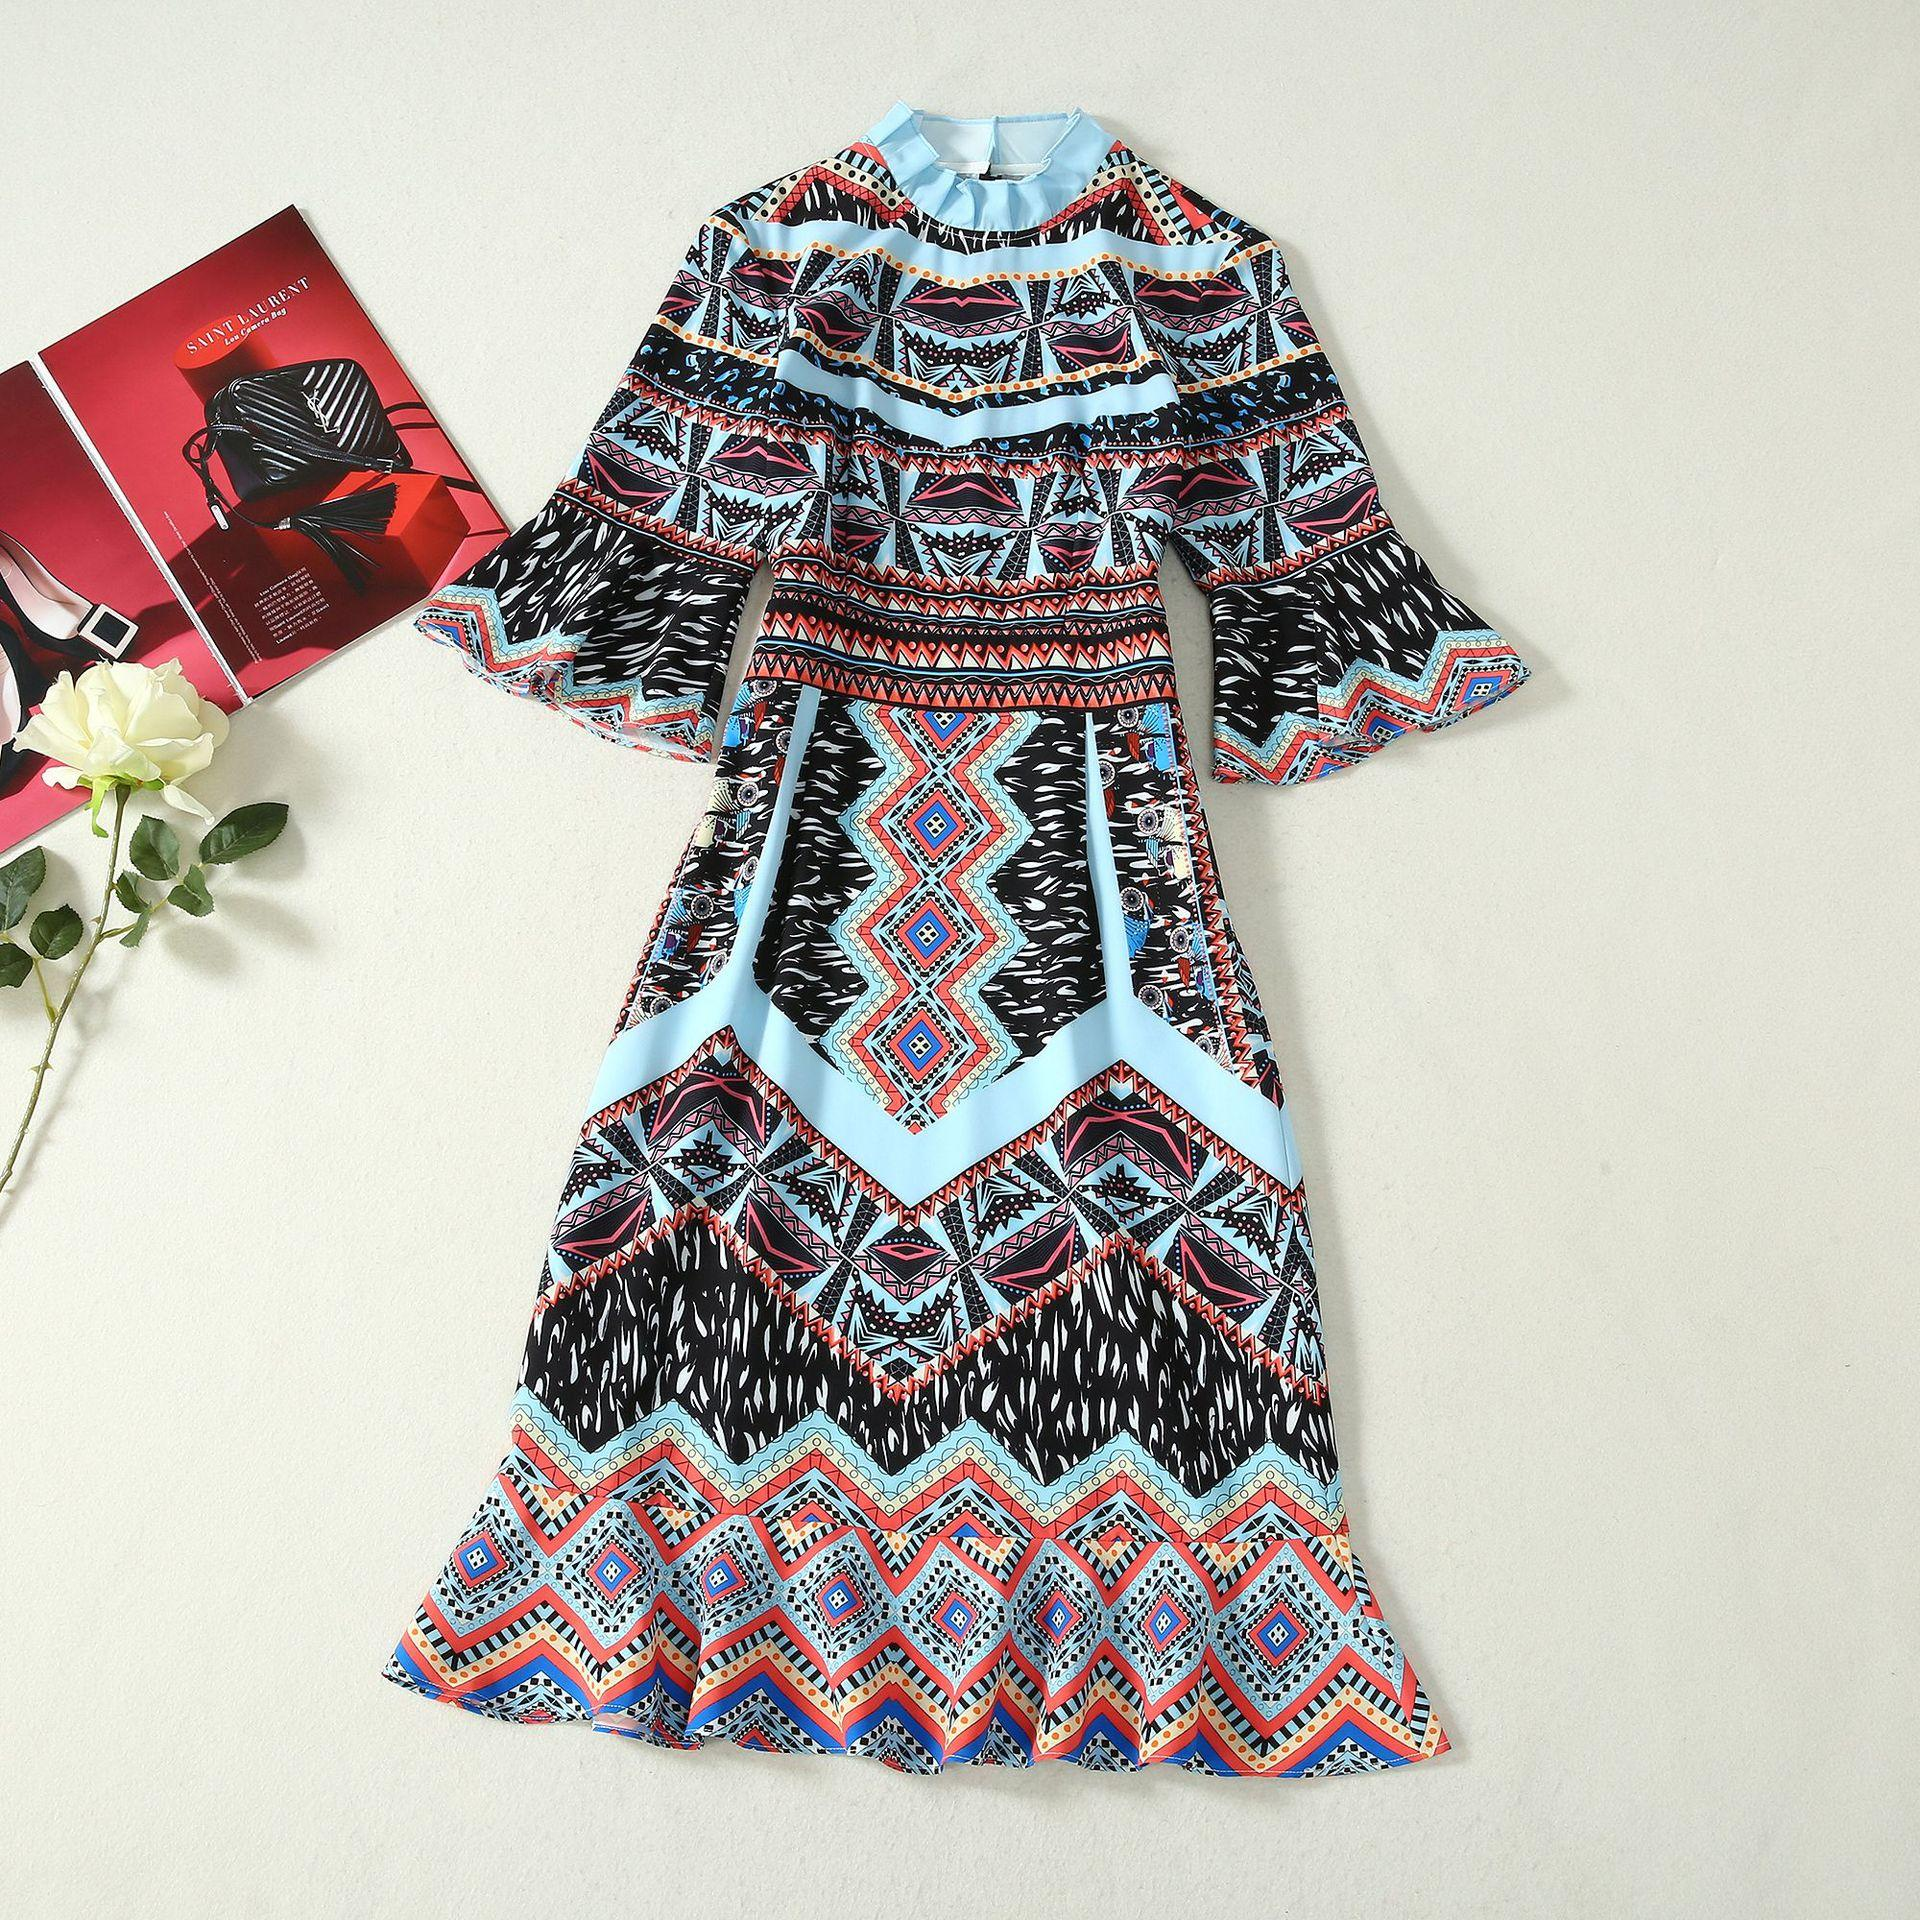 801 2020 Free Shipping Summer A Line Short Sleeve Dress Prom Fashion Crew Neck Flora Print Mid Calf Brand Same Style As